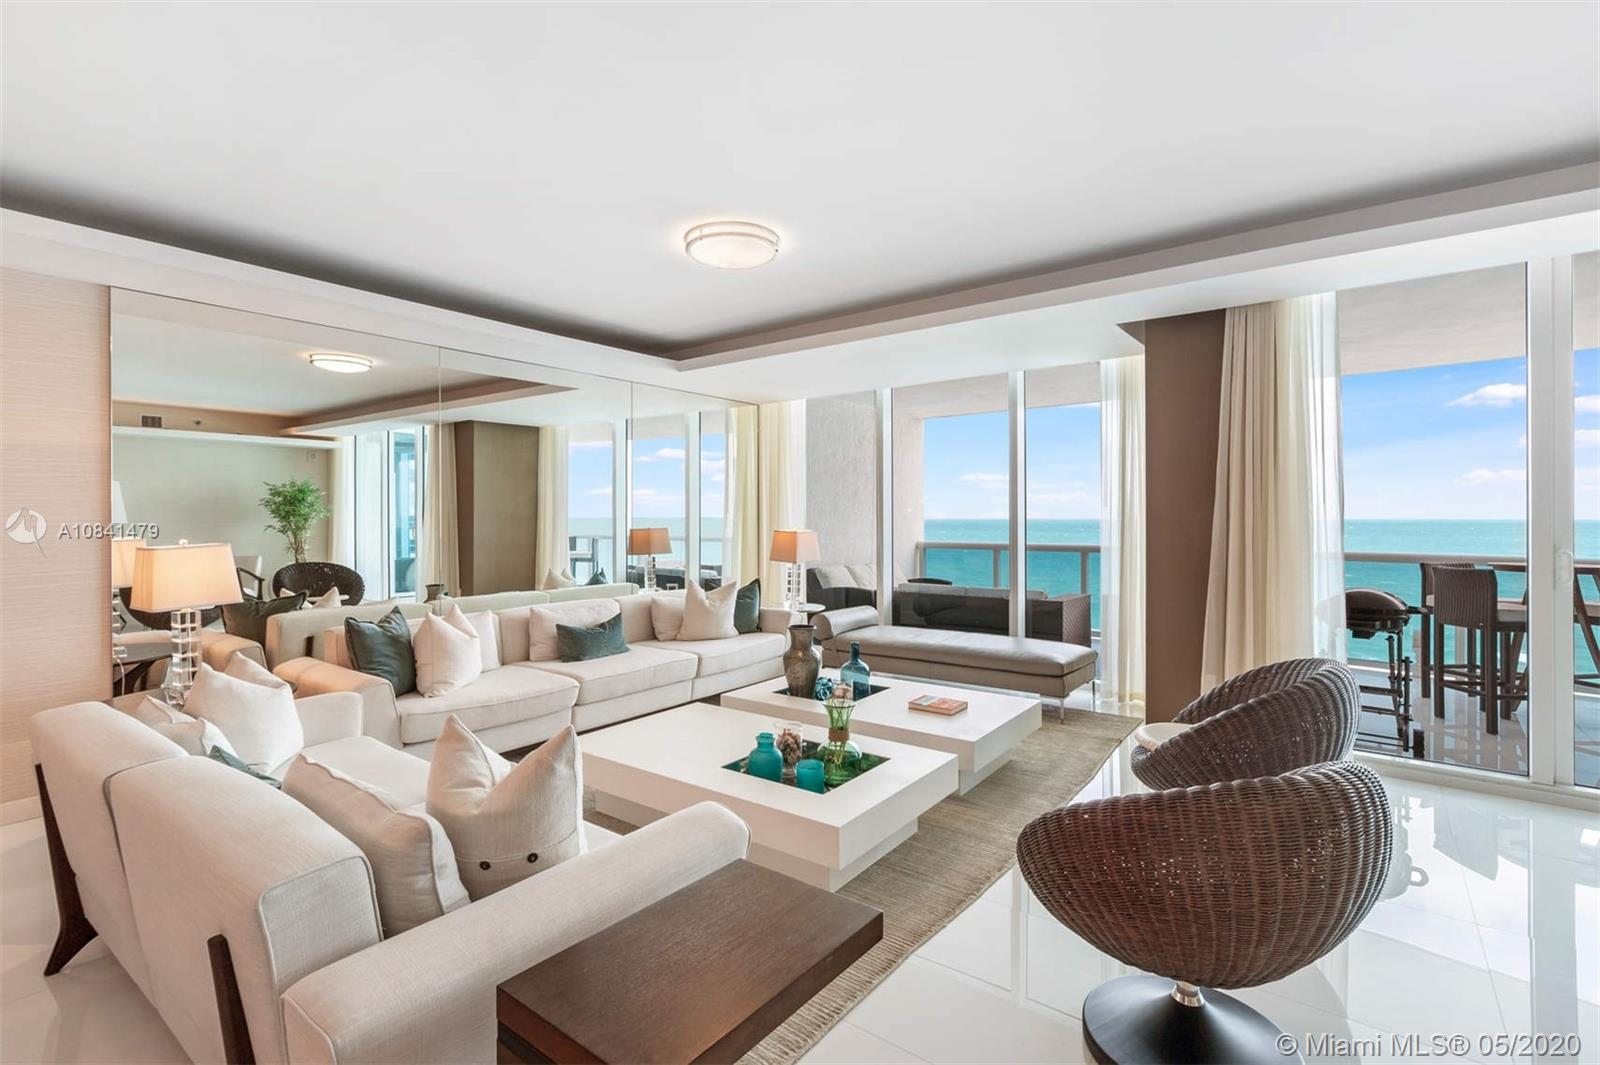 Amazing opportunity to acquire a turnkey residence at prestigious Trump Hollywood, an ocean front condominium that sits on 240 feet of pristine beach in Hollywood, Florida. This unique unit is flow thru with direct views of the ocean and the intracoastal, boasting 3395 sq ft of living area and two expansive balconies. It has been professionally decorated and is ready to move in. The spacious living space makes this unit especially comforting for either your new permanent home or your home away from home. The condominium also offers exceptional amenities such as beach and pool service, restaurant by the pool, 24 hour valet, gym, tennis courts, billiard, just to name a few.  https://vistabee.com/mls/z5c5zr/